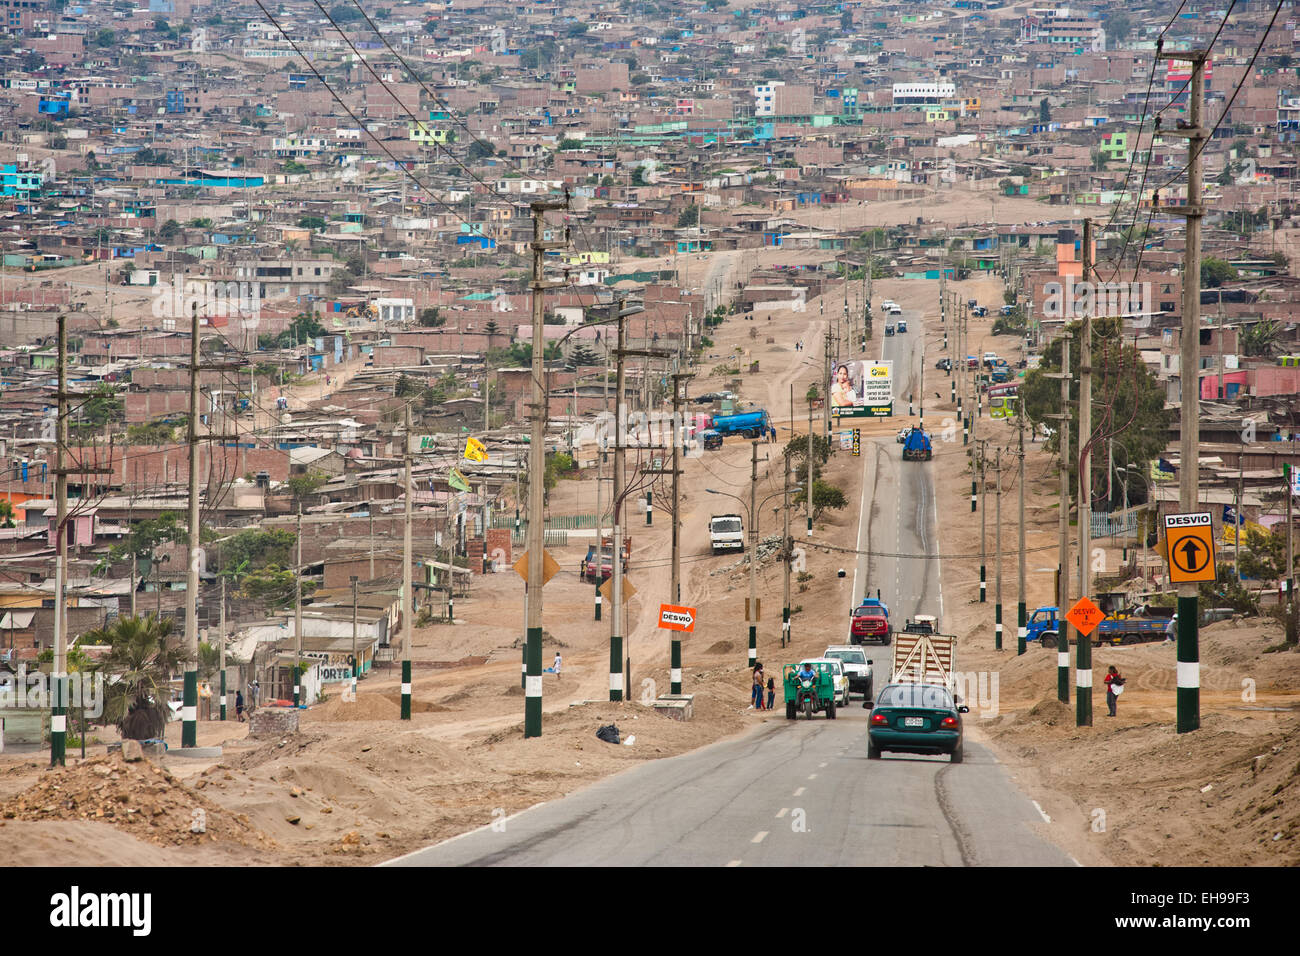 A sprawling settlement of houses, cut by a single road, is seen on the dusty hillsides of Pachacútec, Lima, - Stock Image